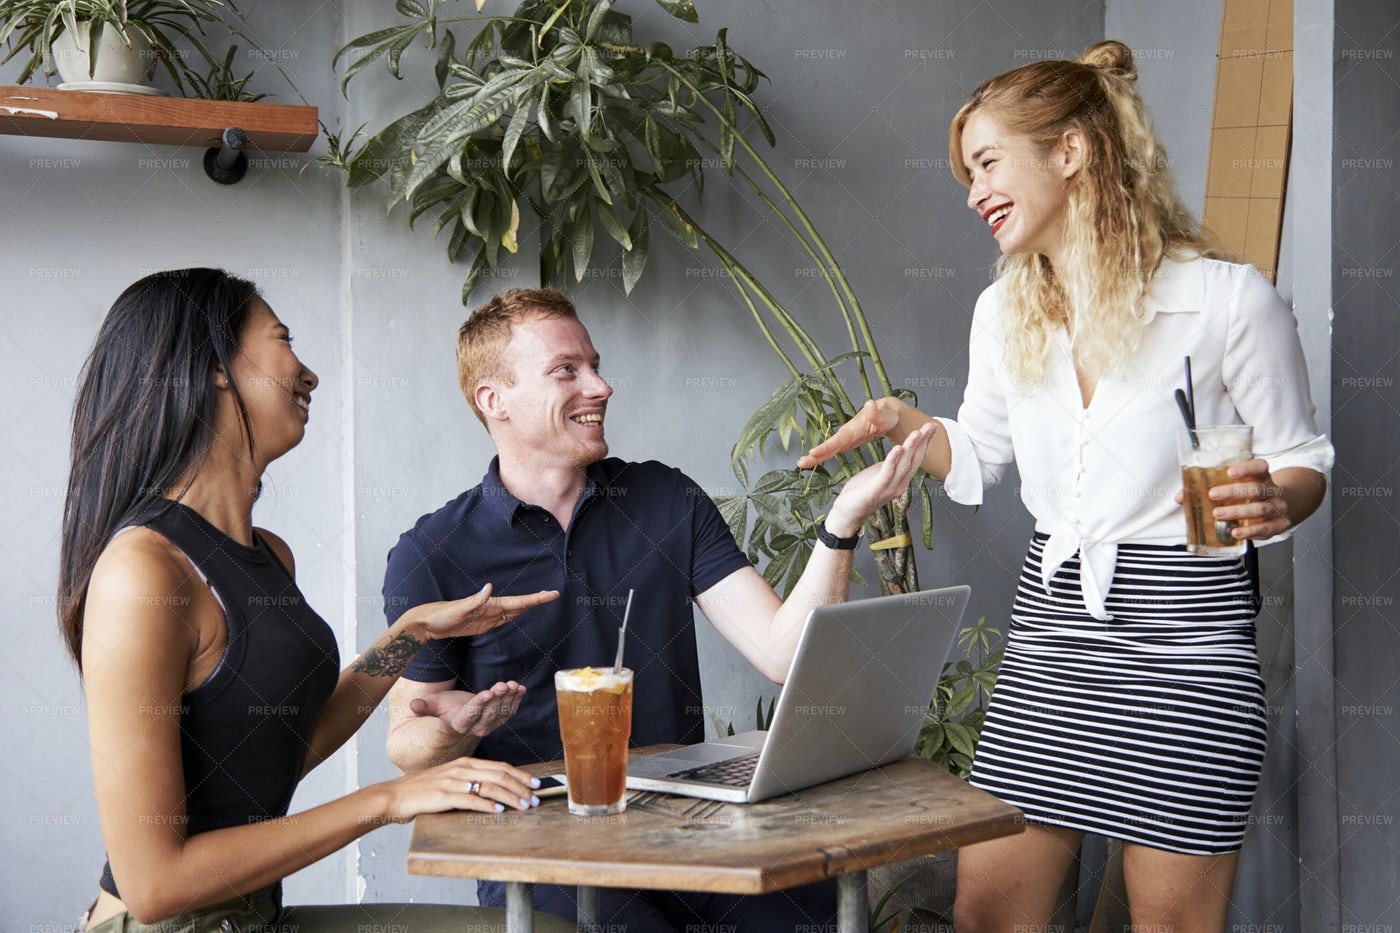 Young People Joking Around In Cafe: Stock Photos